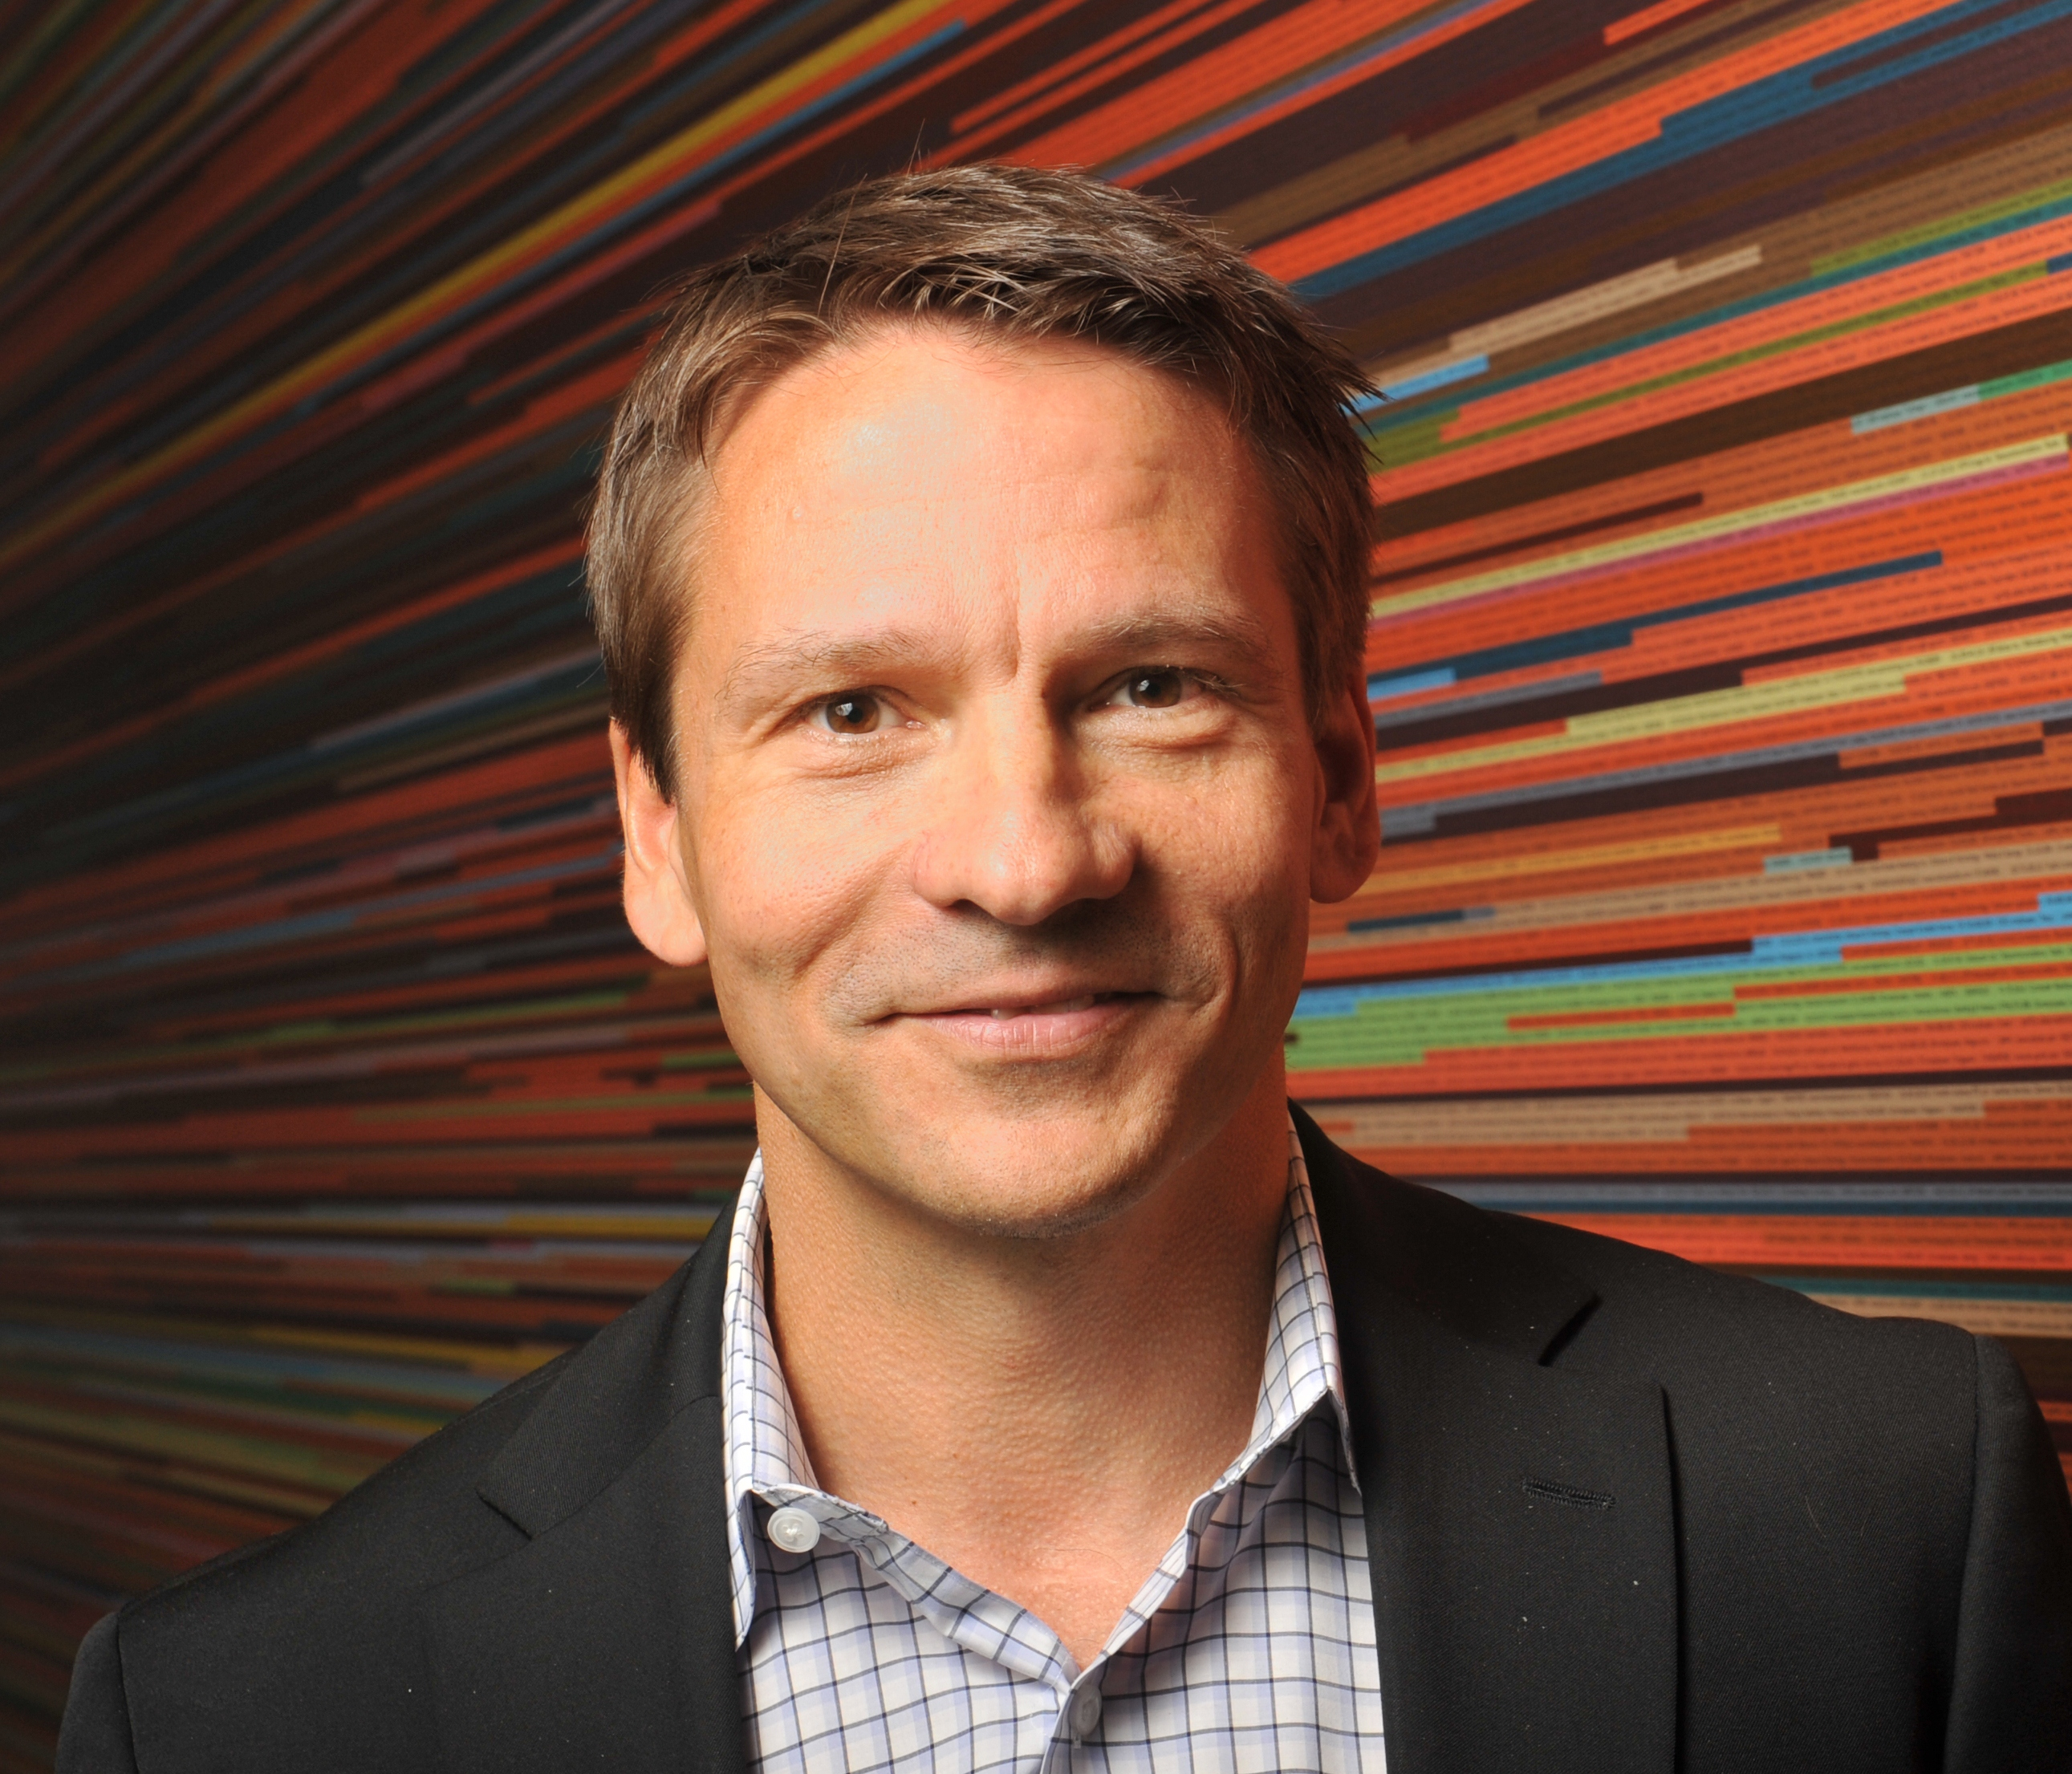 DemandBase founder and CEO Chris Golec